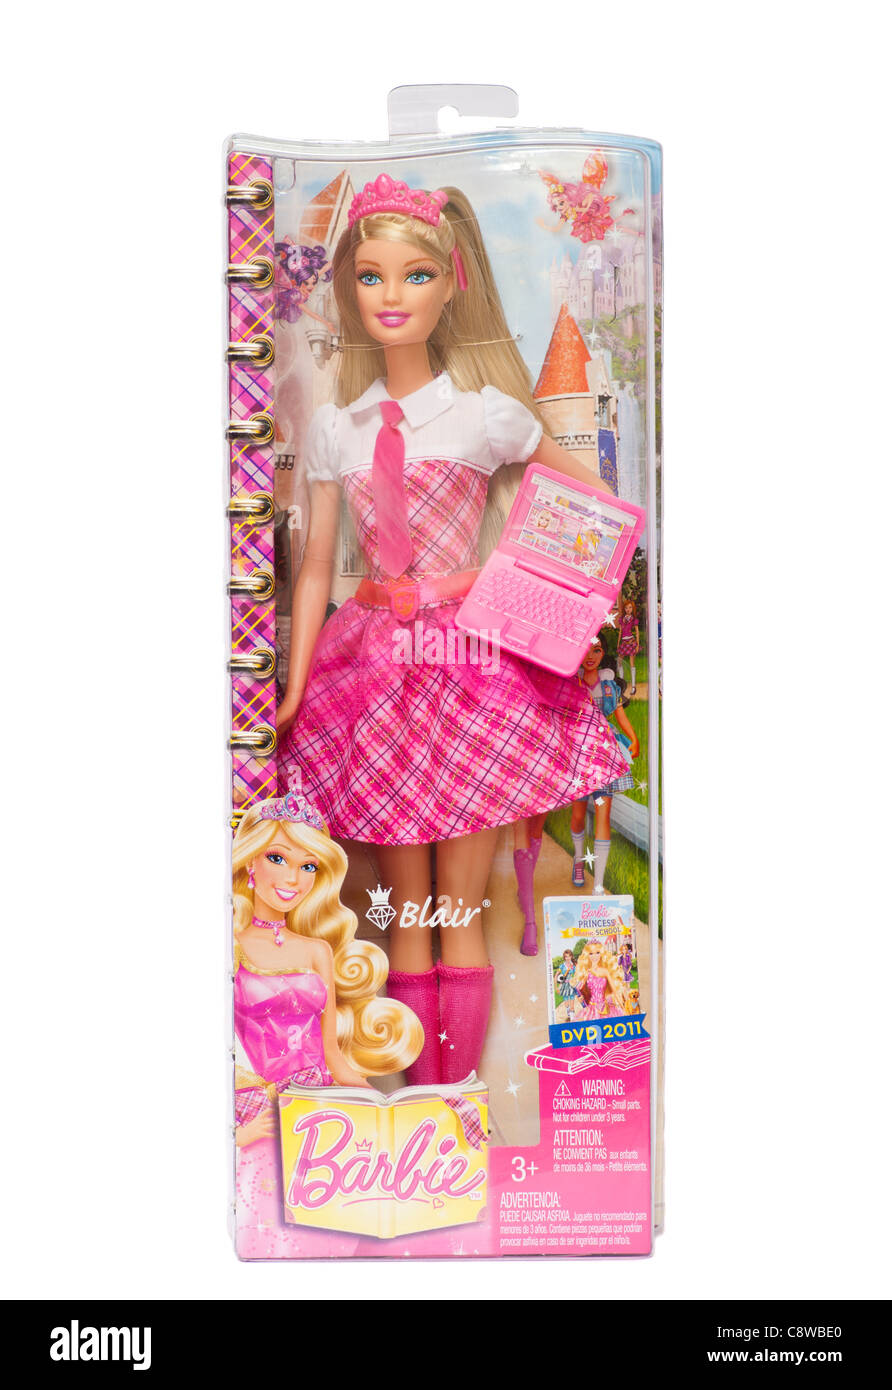 A Boxed Childs childrens girls Barbie Doll - Stock Image